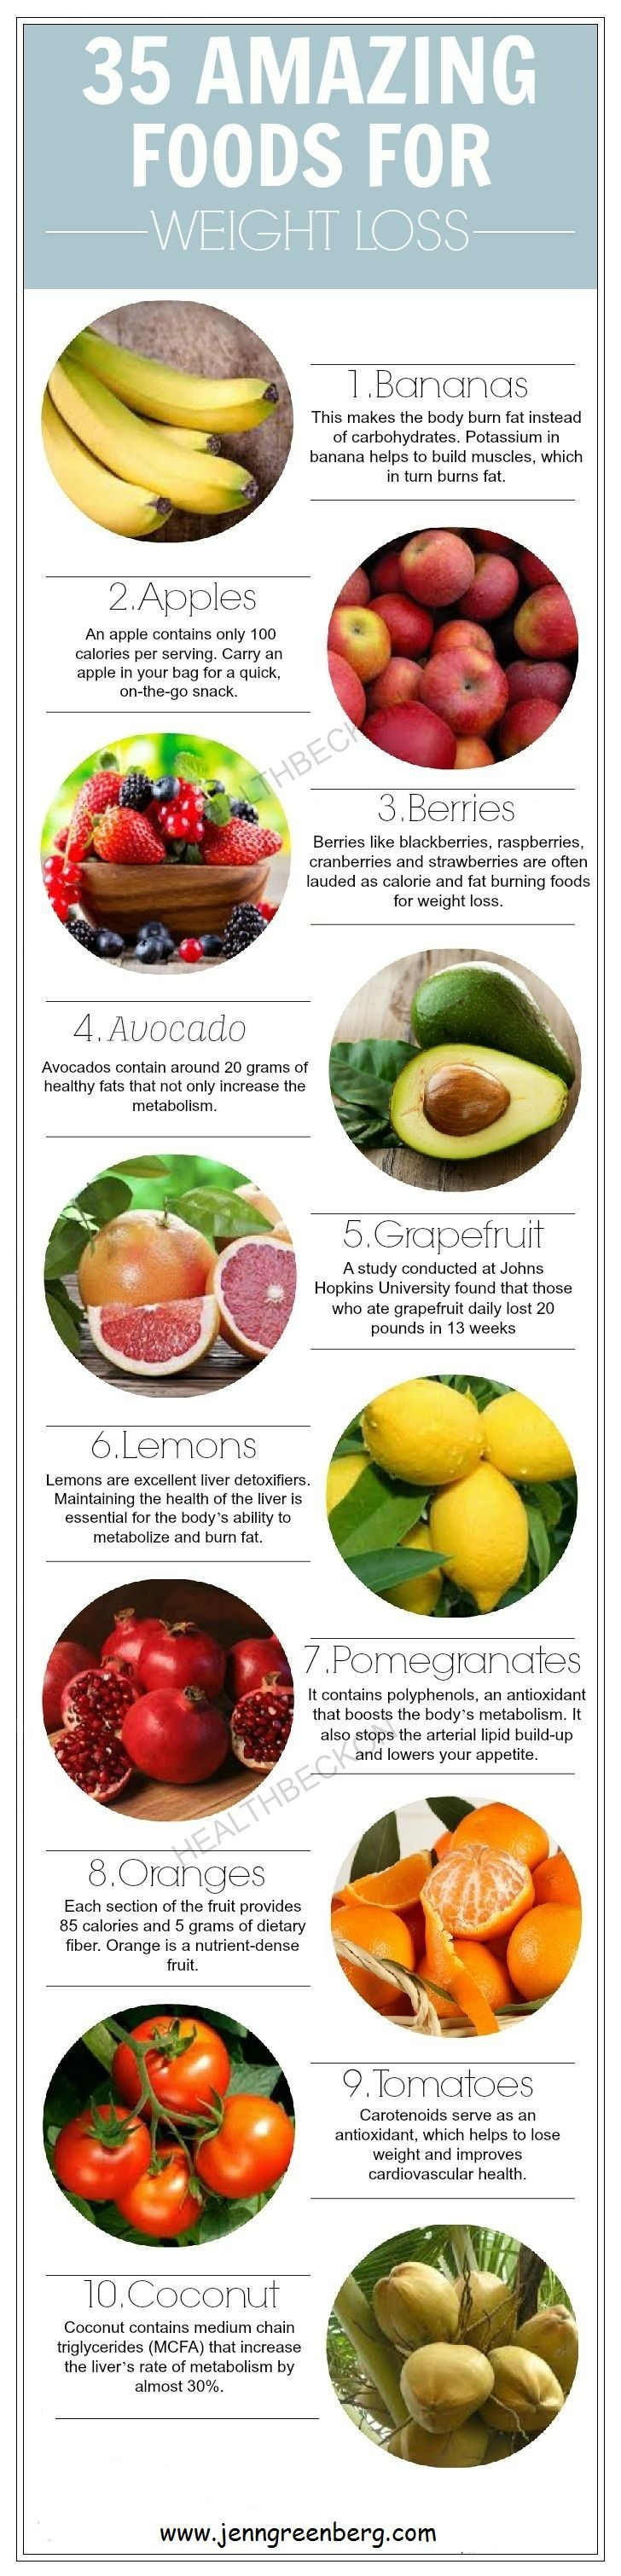 35 Amazing Foods for Weight Loss